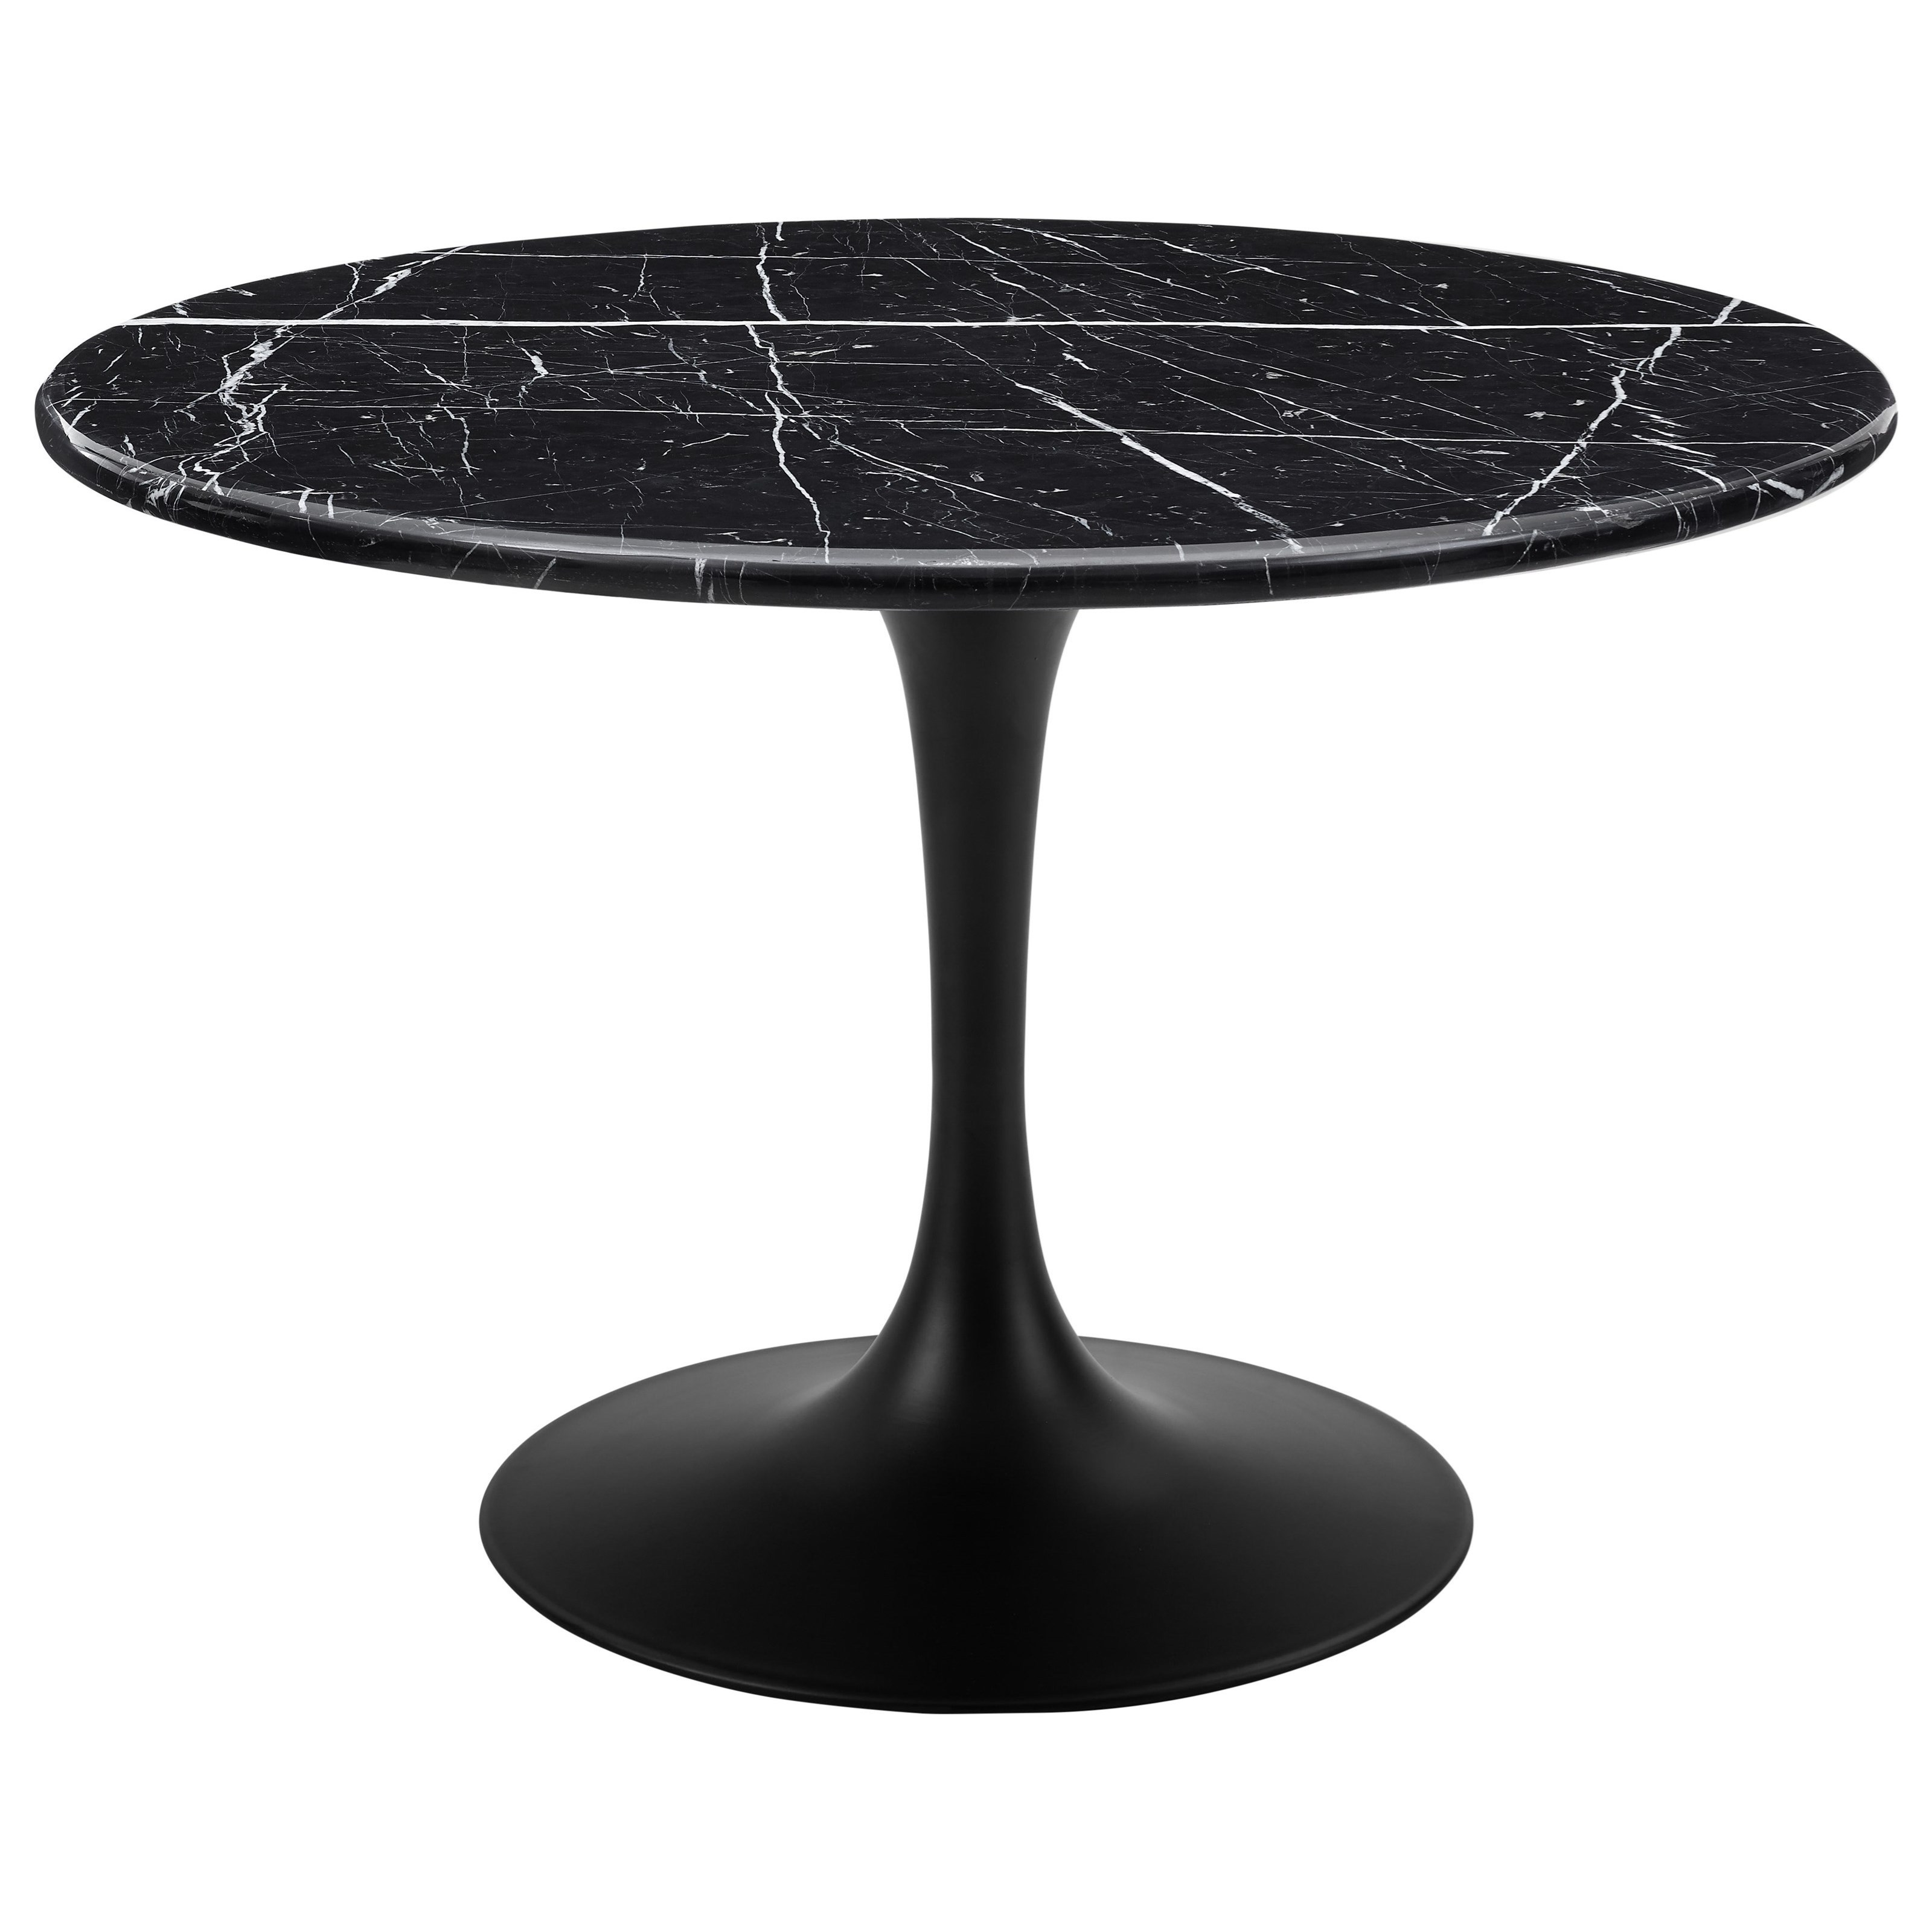 Colfax Table - Black Top & Black Base by Steve Silver at Walker's Furniture